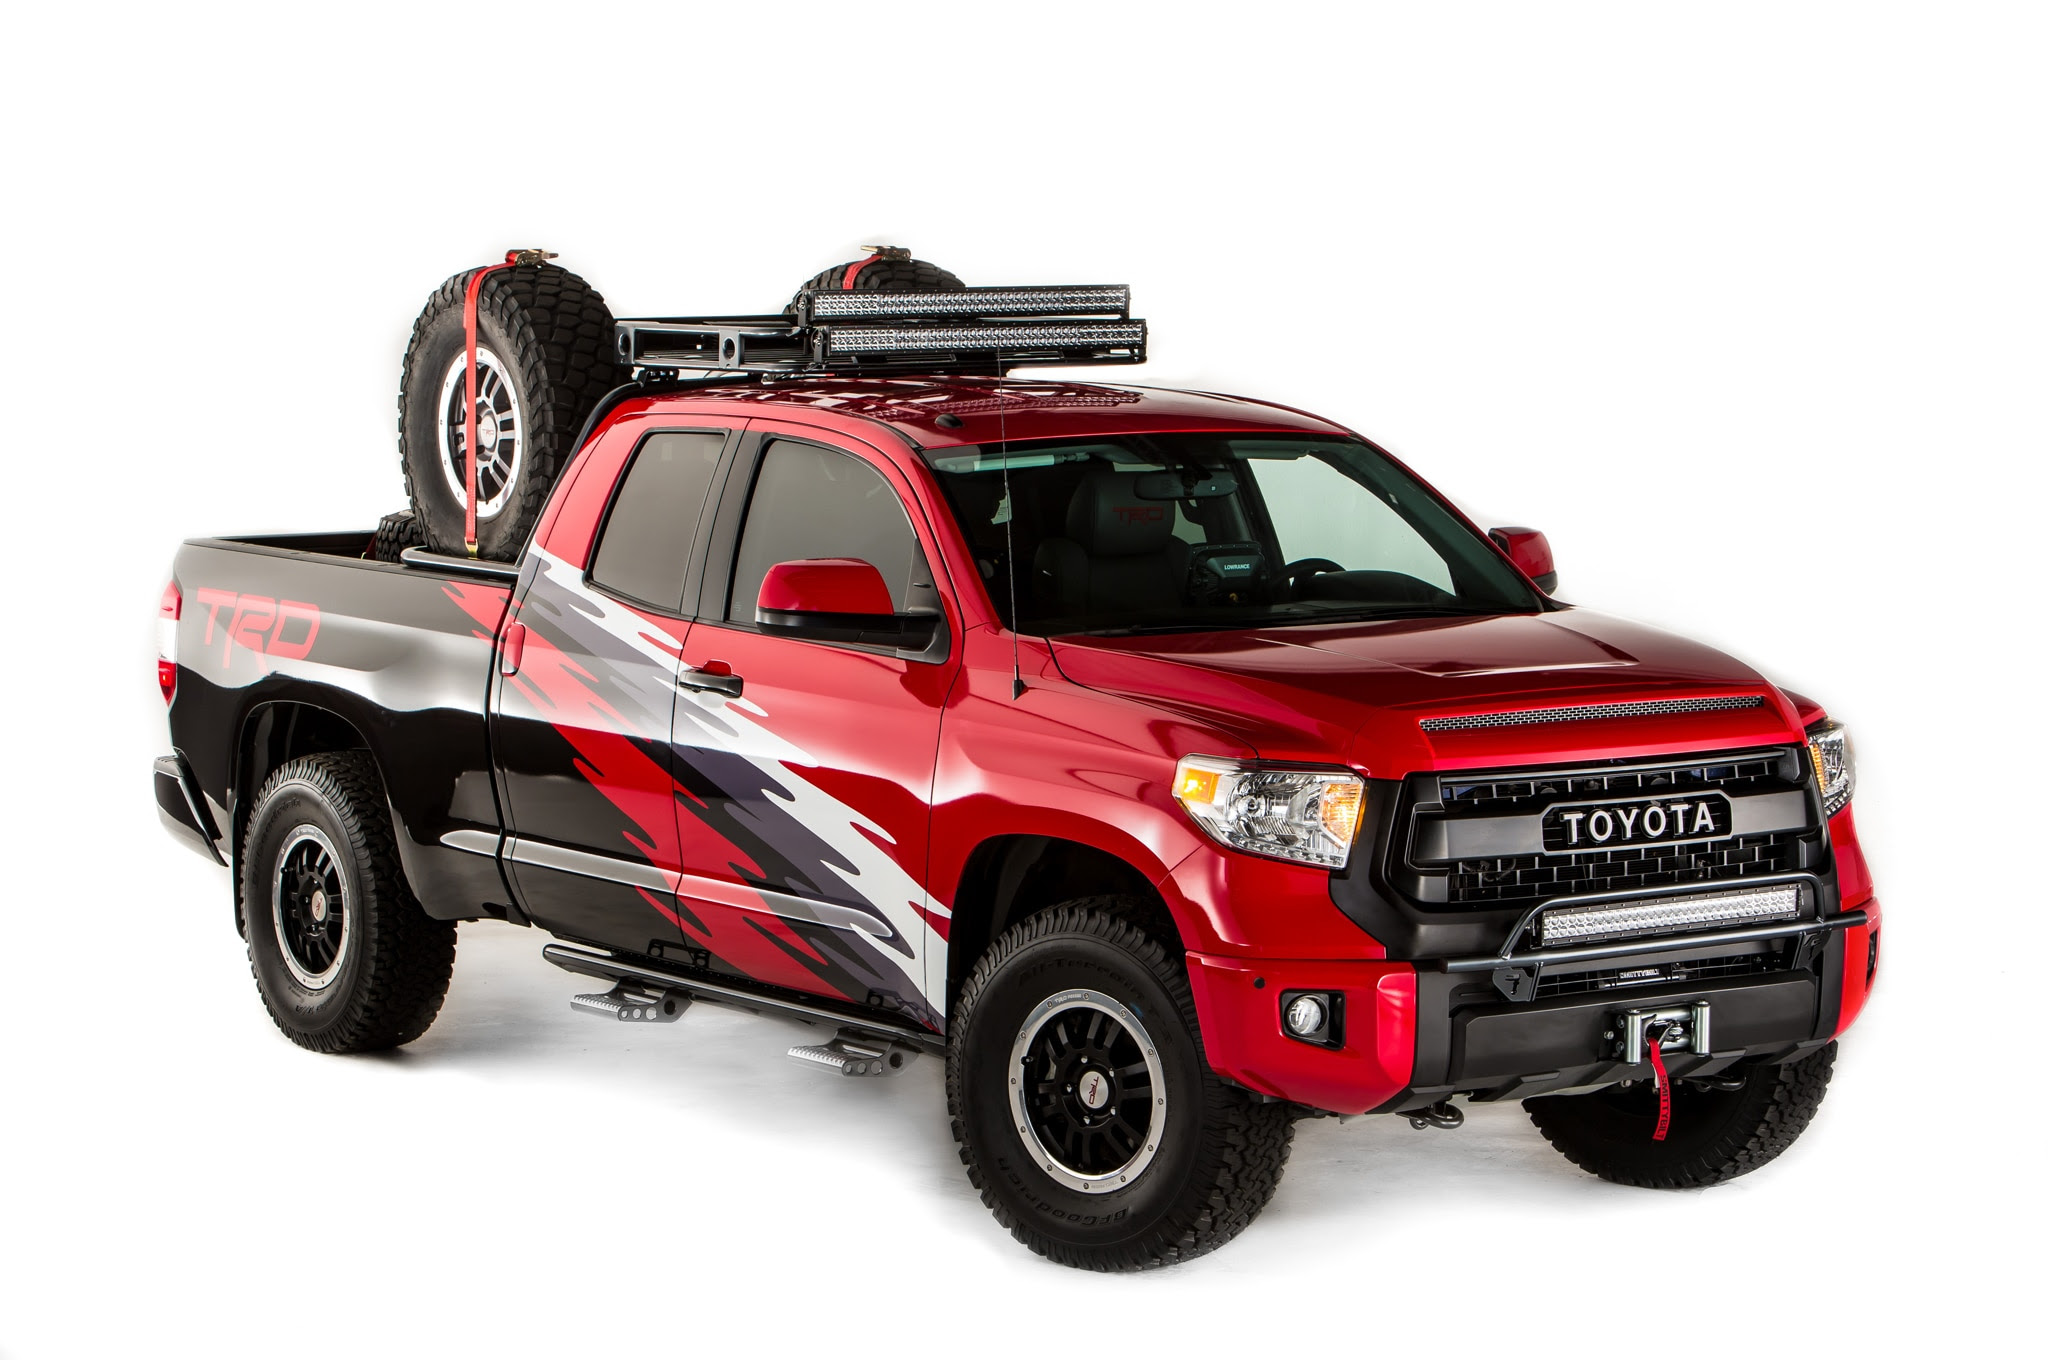 2015 Toyota 4Runner, Tacoma, Tundra TRD Pro Review ...